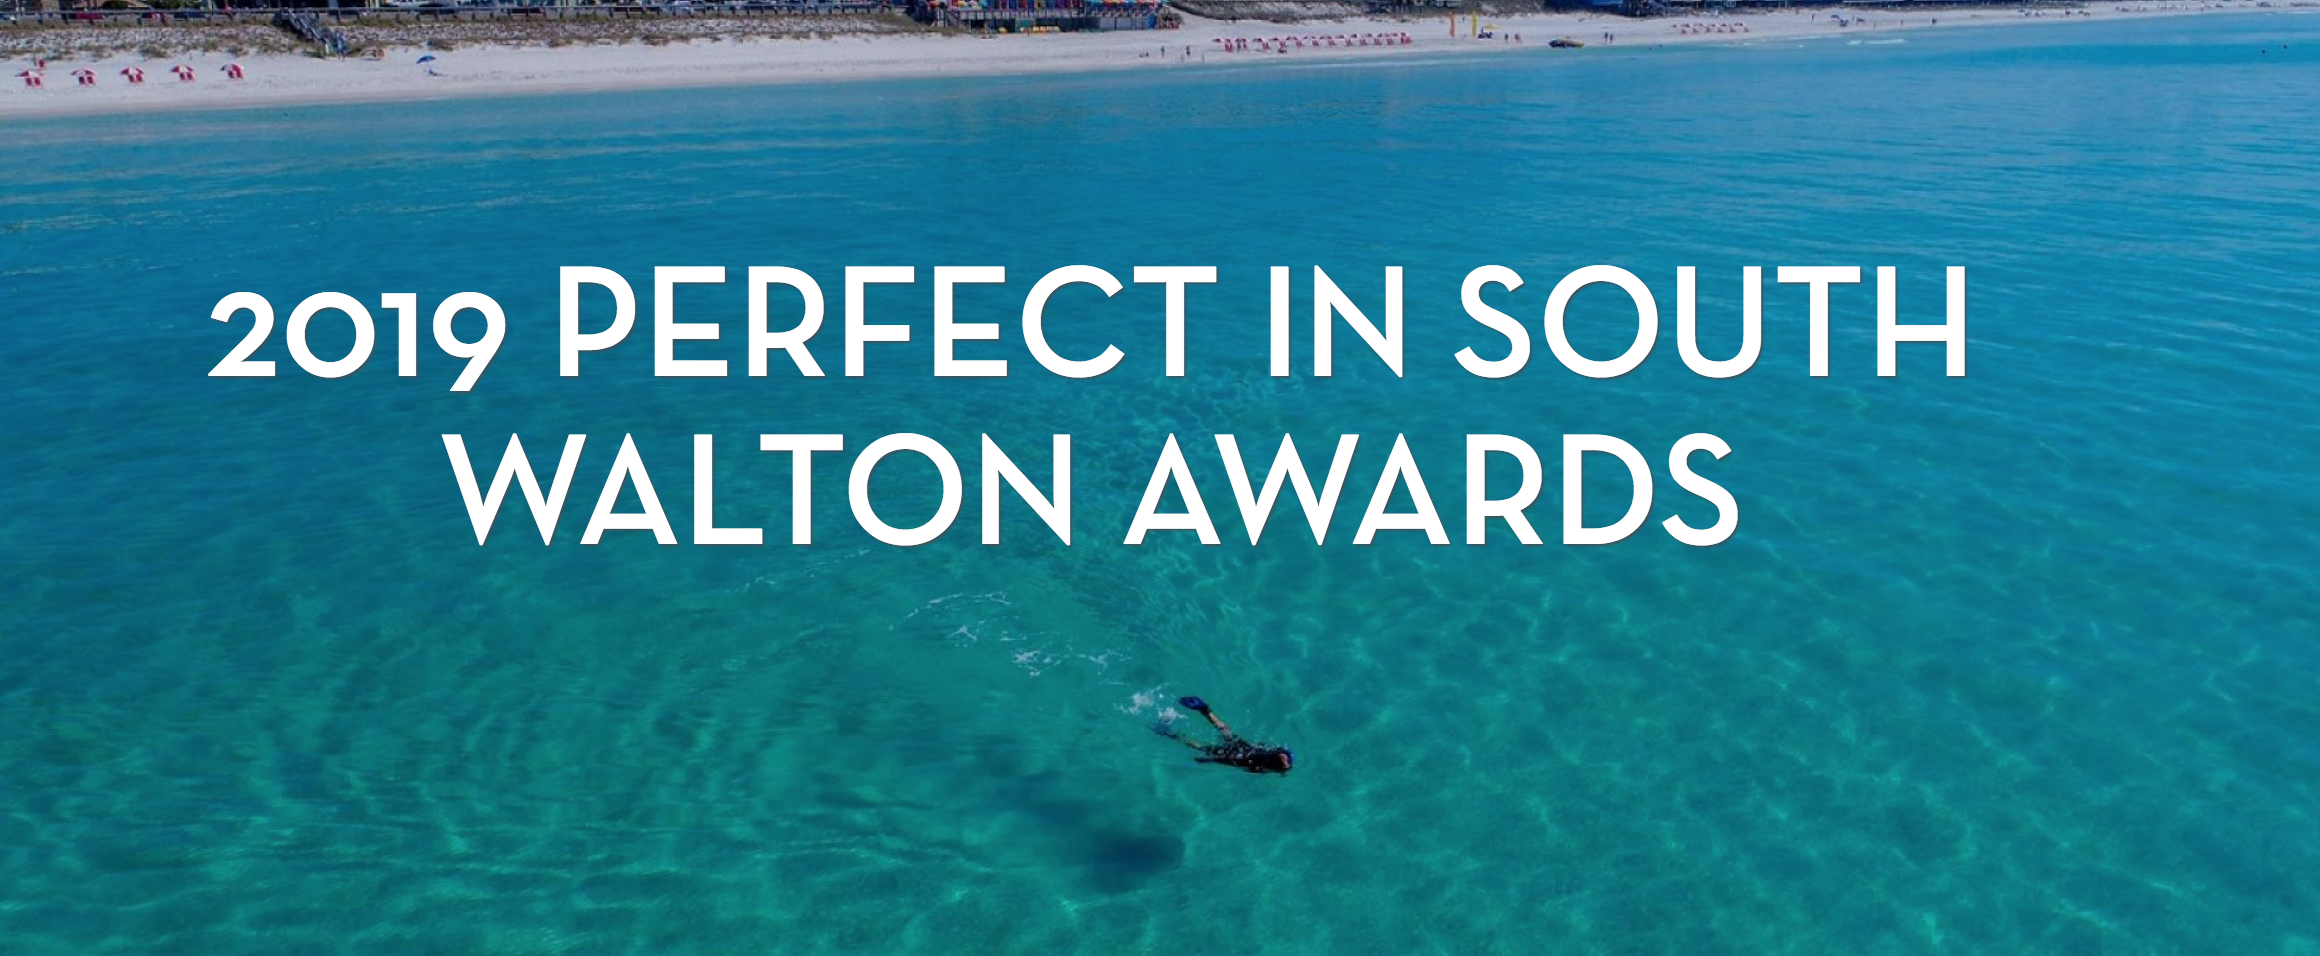 Voting Raffle for the 2019 Perfect in South Walton Awards for  Best Outdoor Adventure